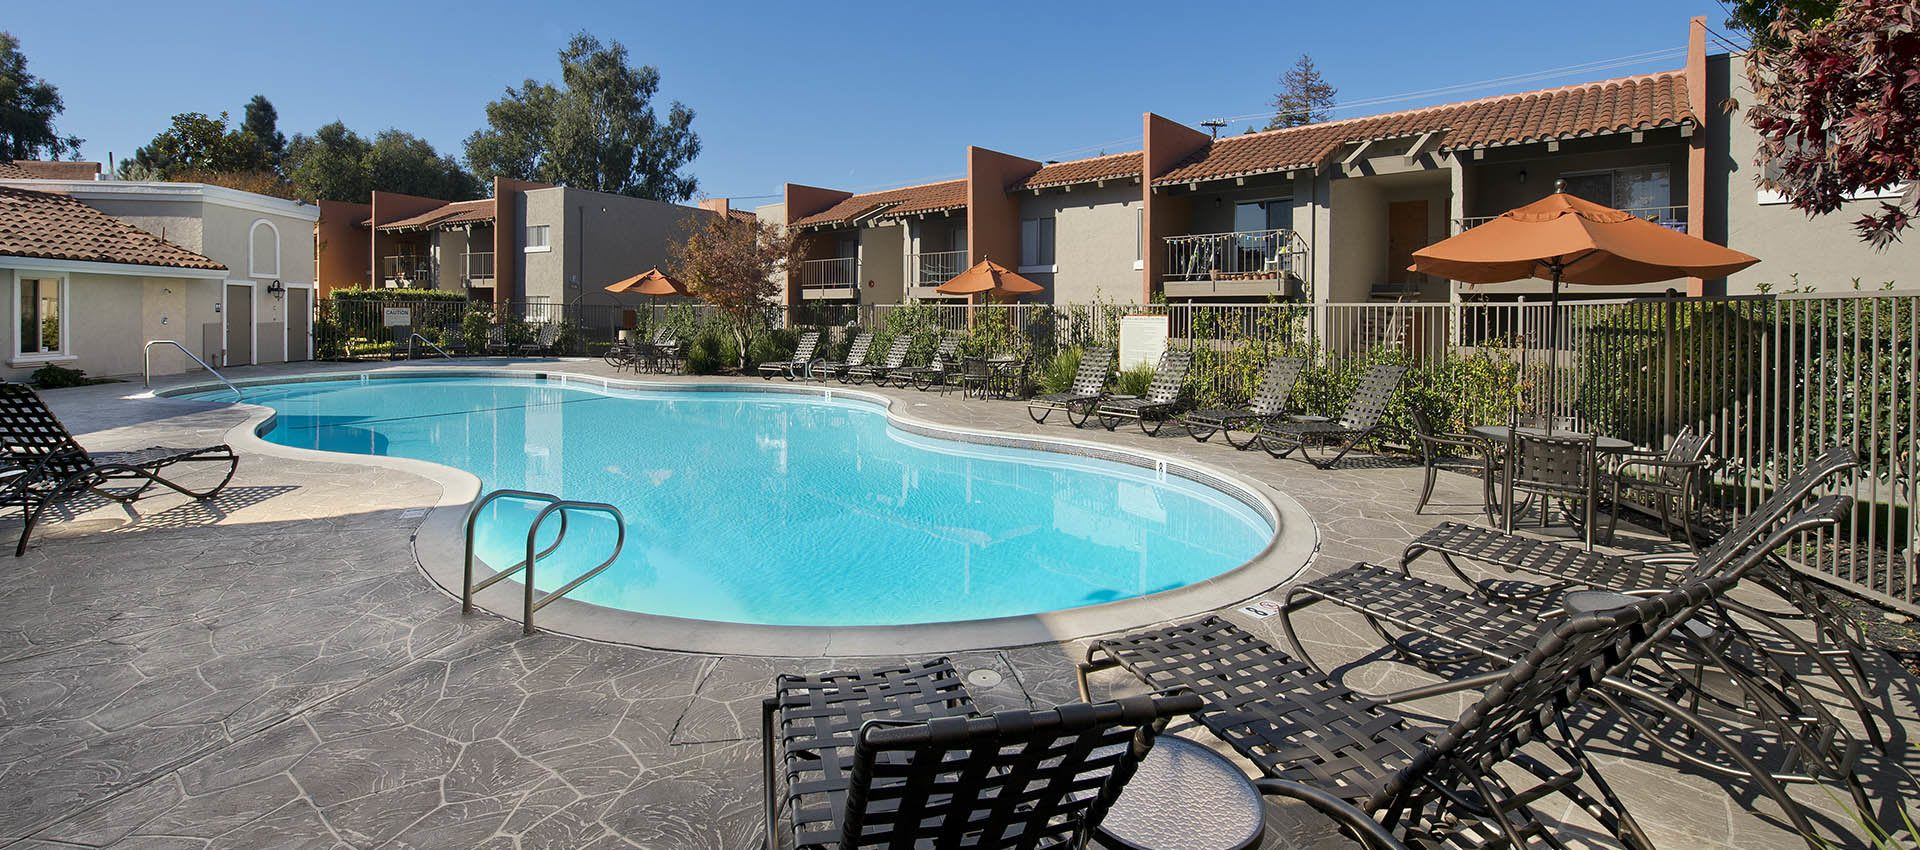 Expansive Pool Deck with WiFi at La Valencia Apartment Homes in Campbell